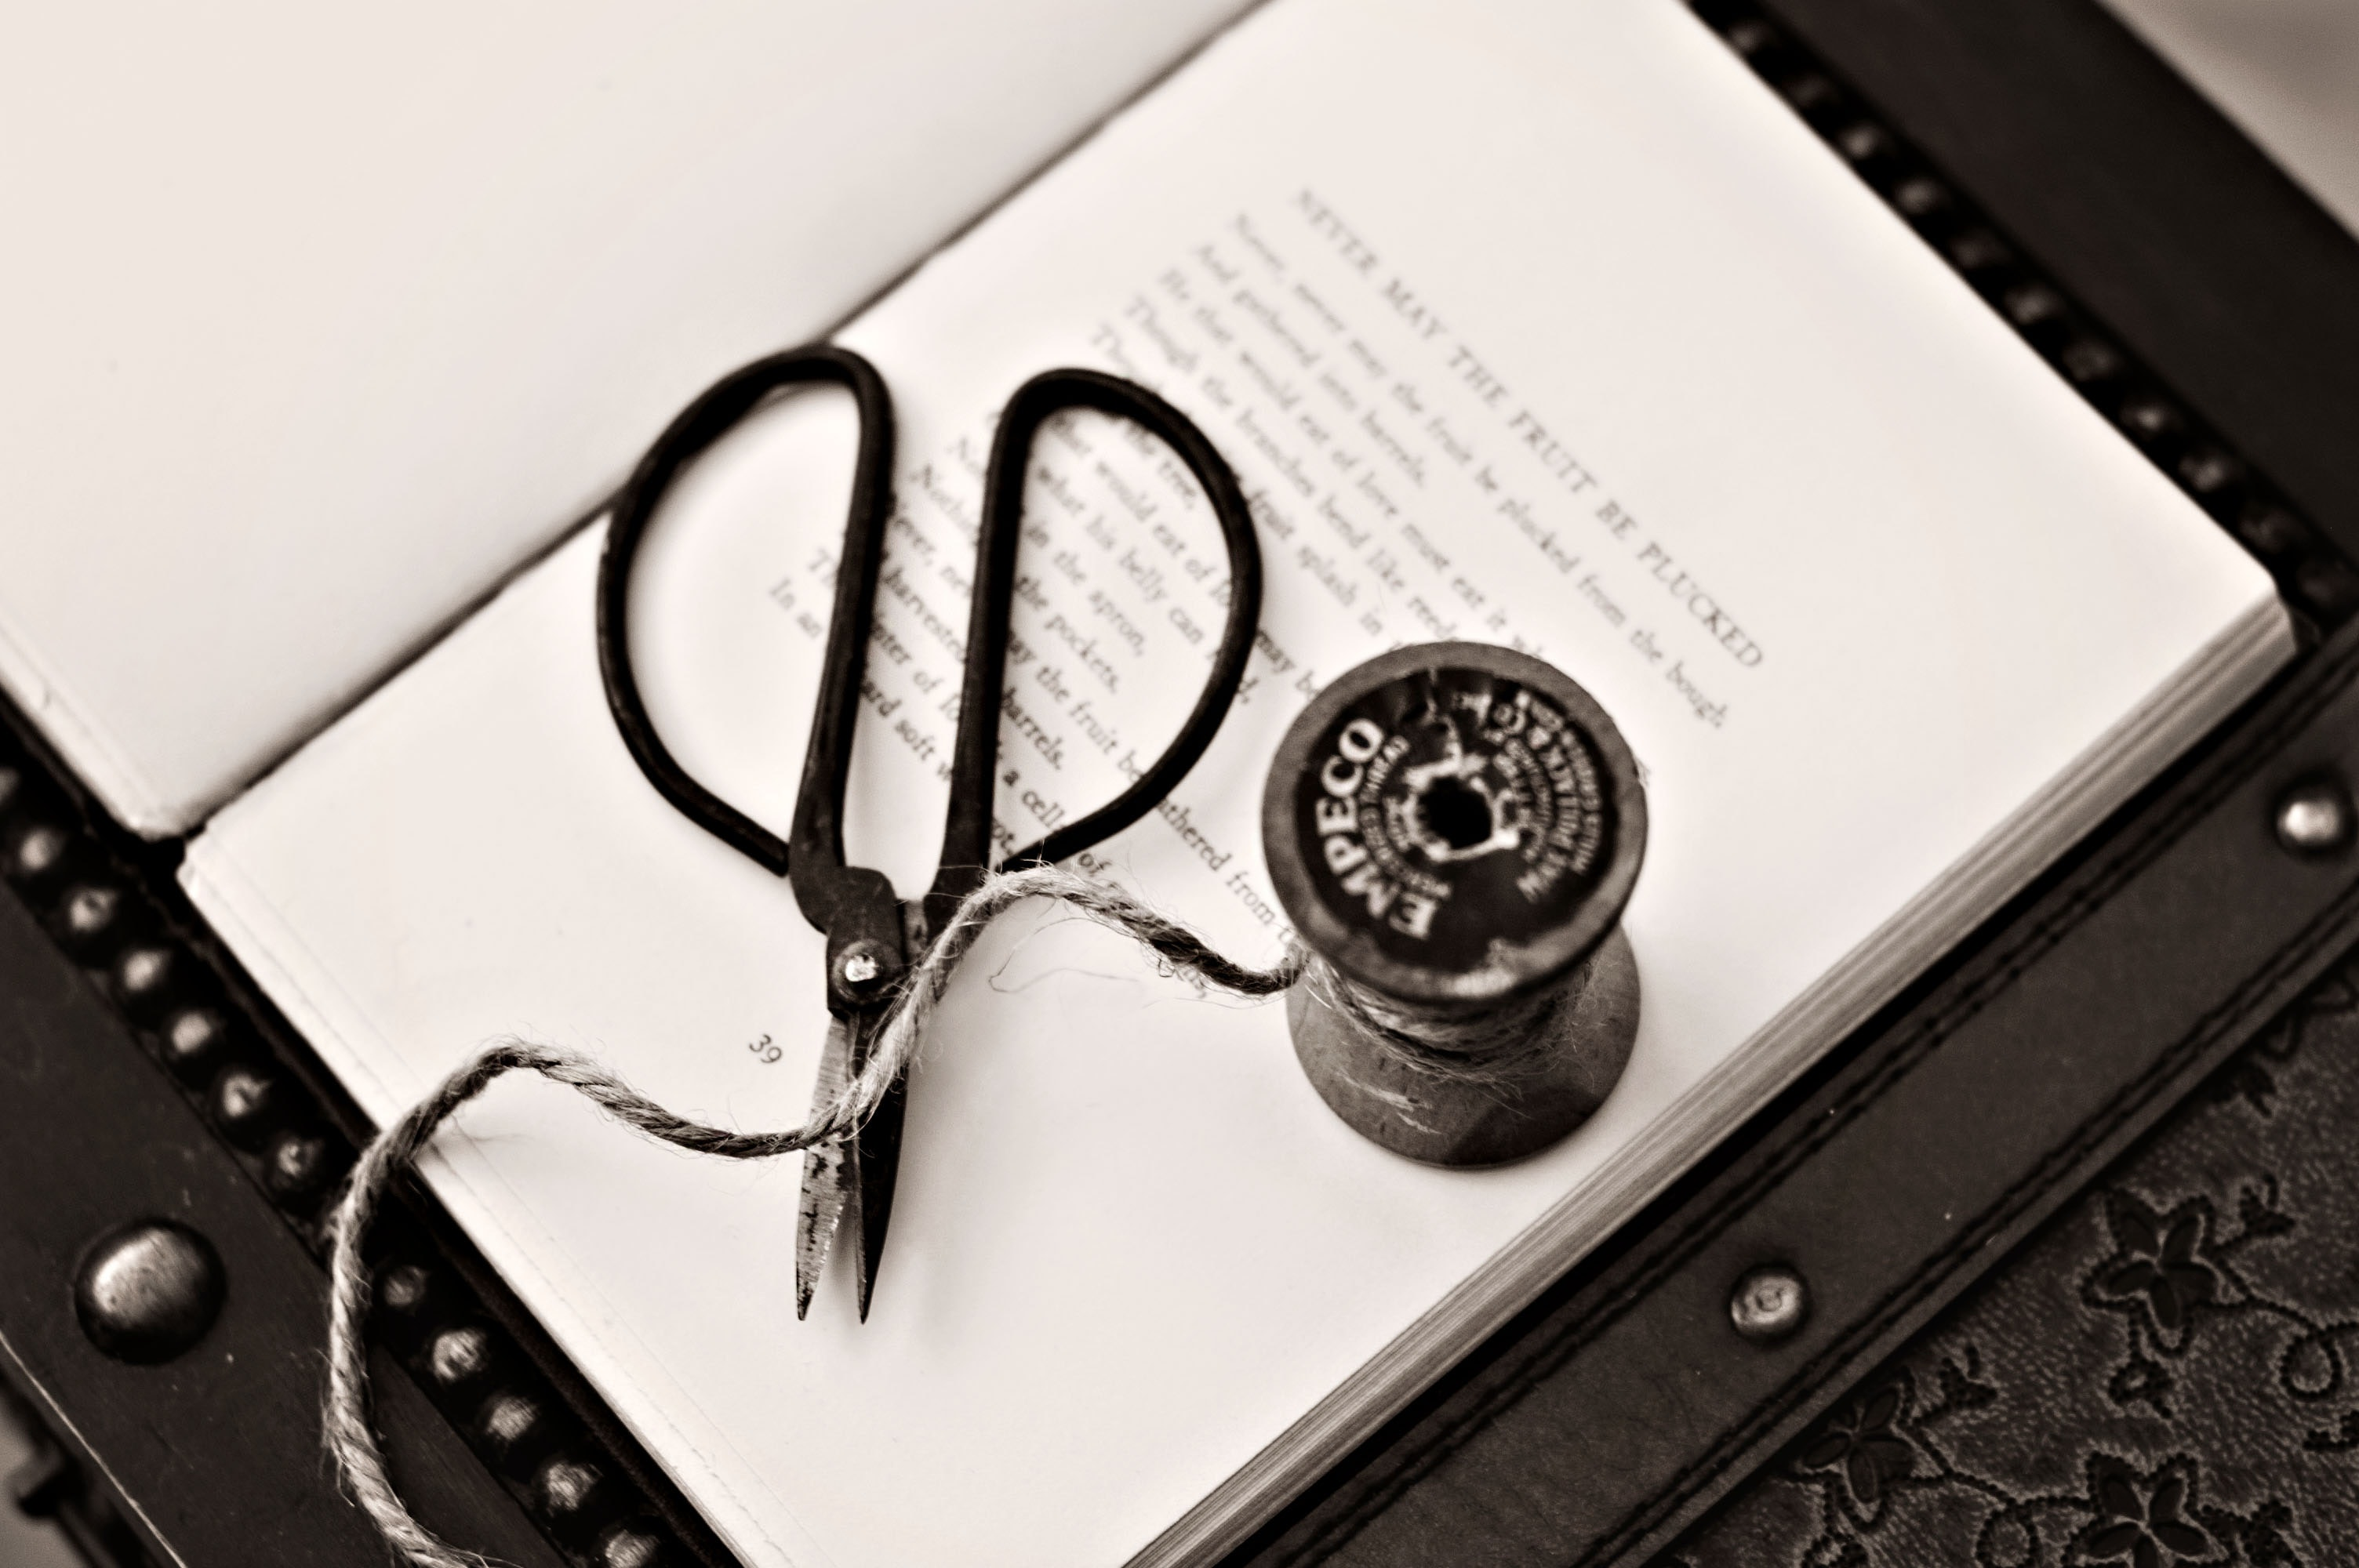 Black Scissors Near Thread Reel on White Book Page, Blur, Book, Book pages, Close -up, HQ Photo